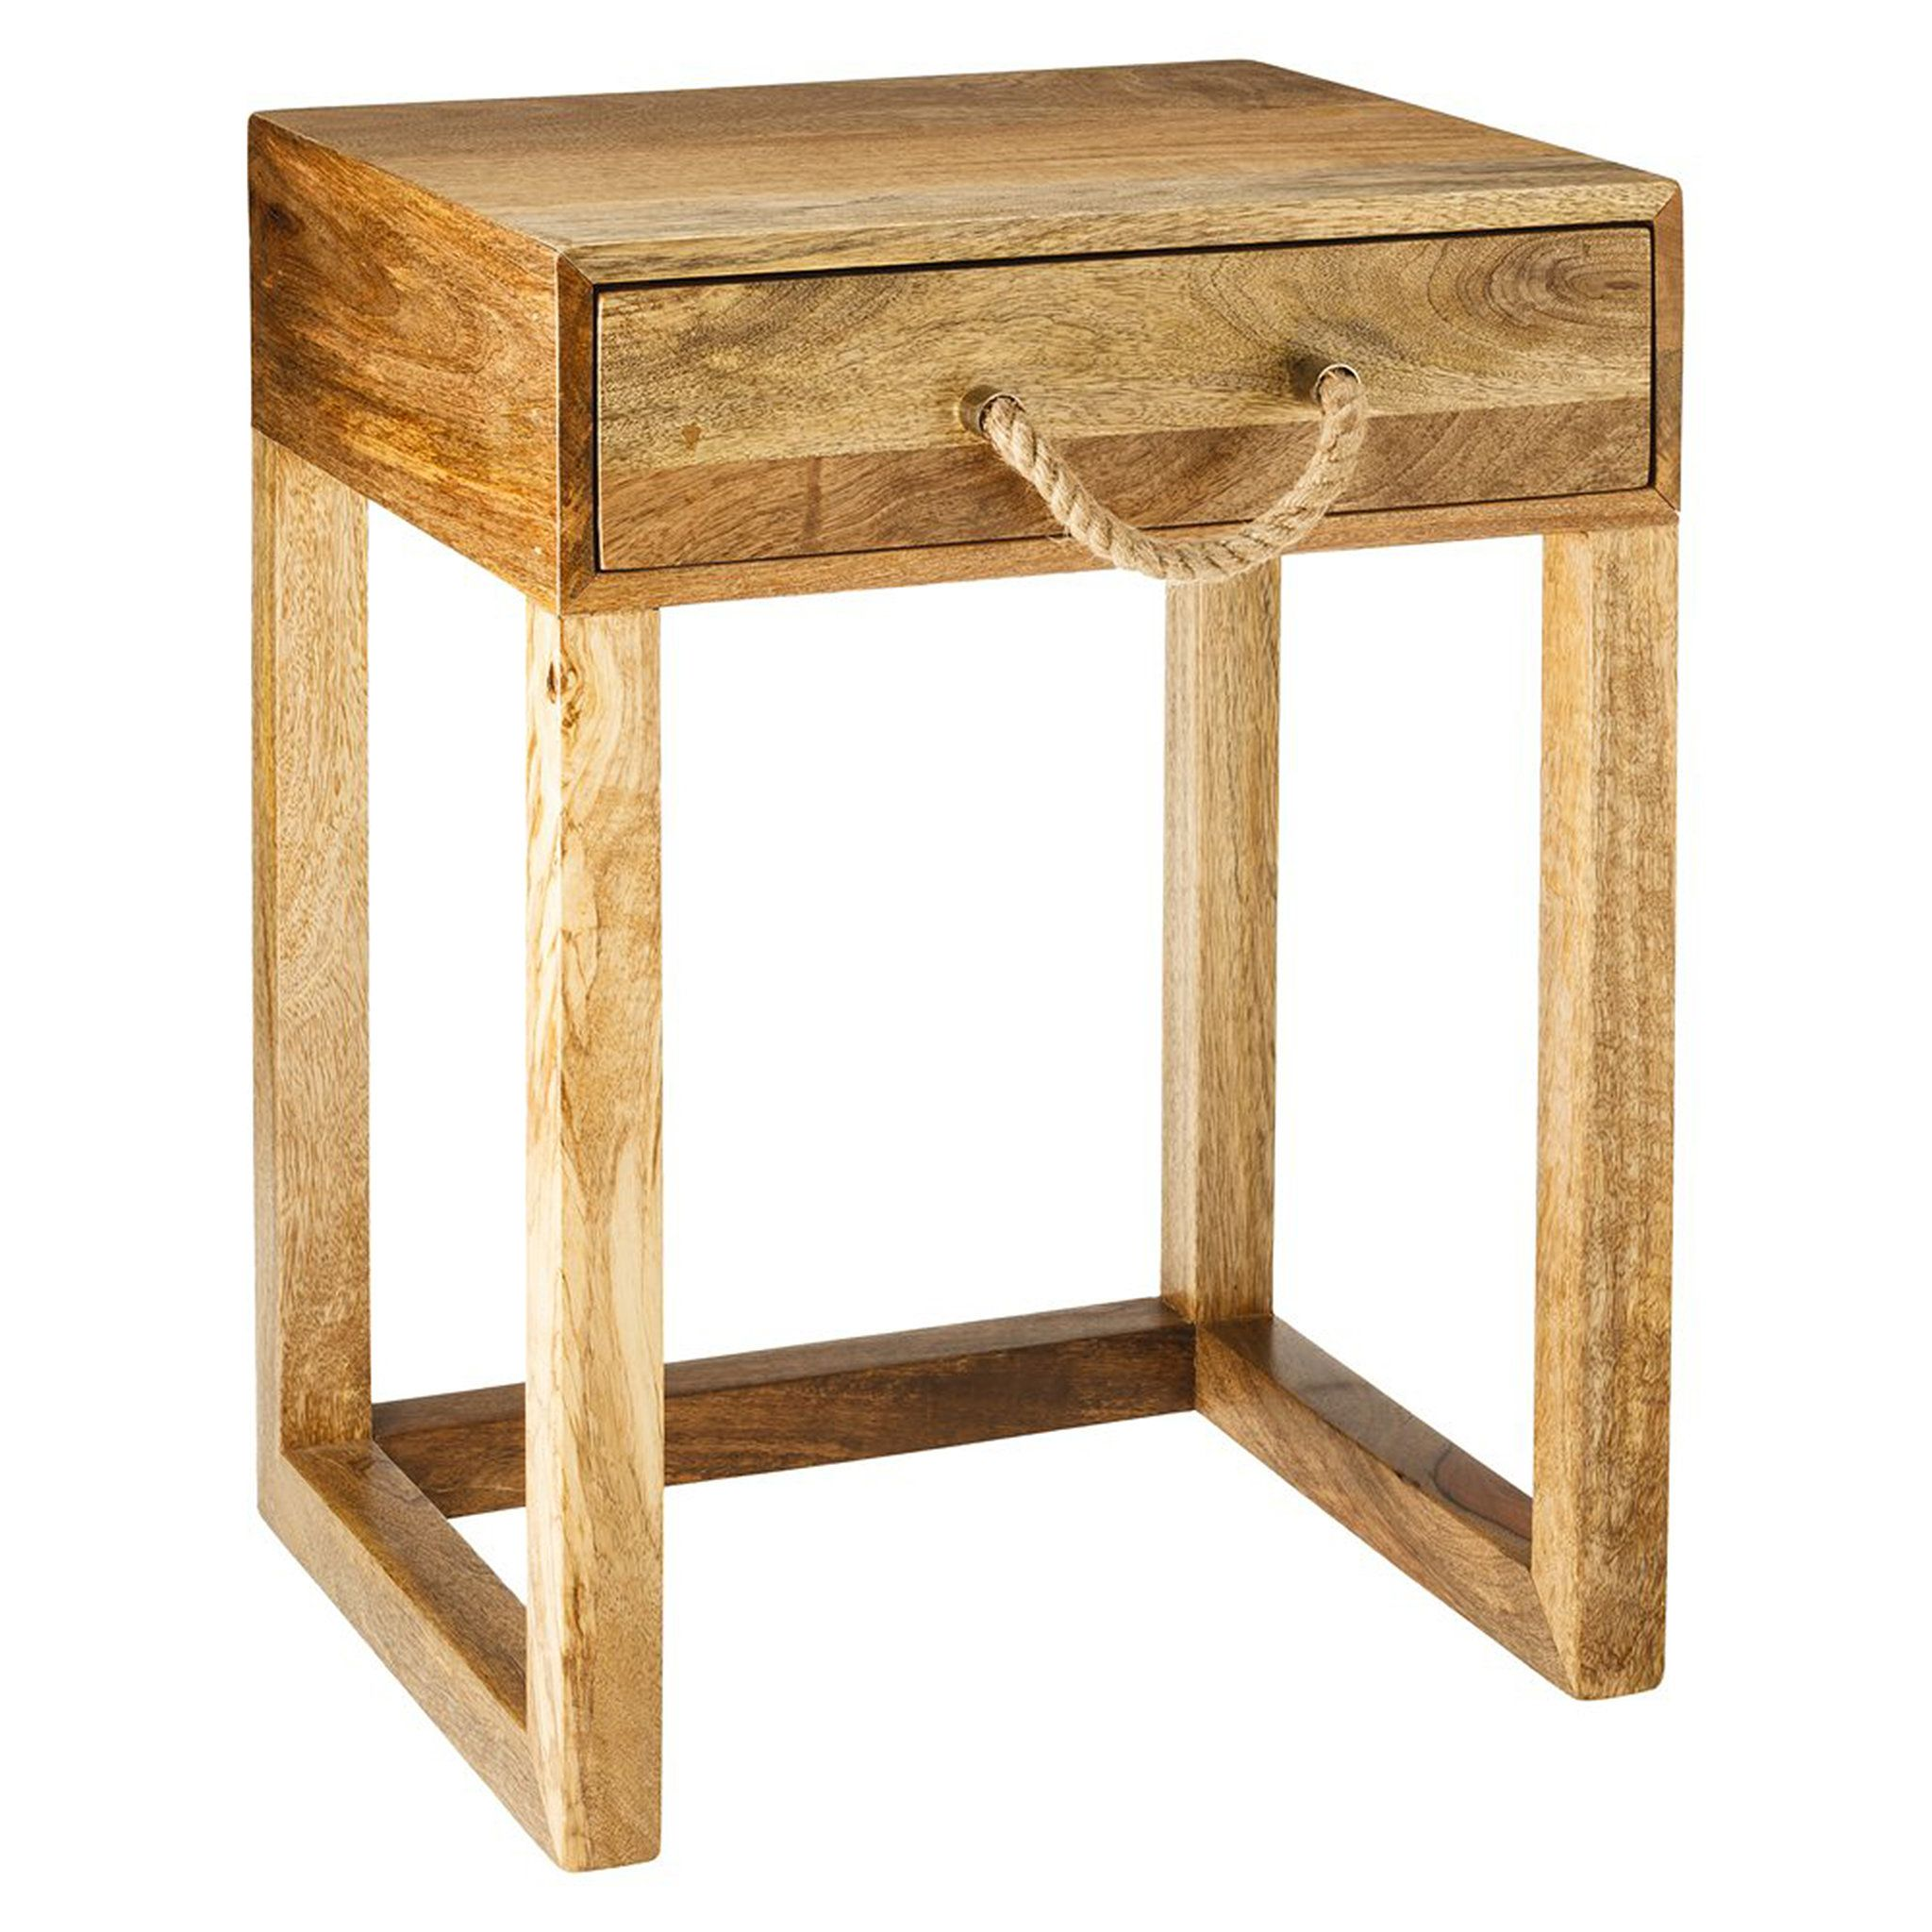 the natural wood tones and rope handle this accent table threshold espresso will casual beach vibe bedroom living room industrial end with drawer tall patio dining console antique